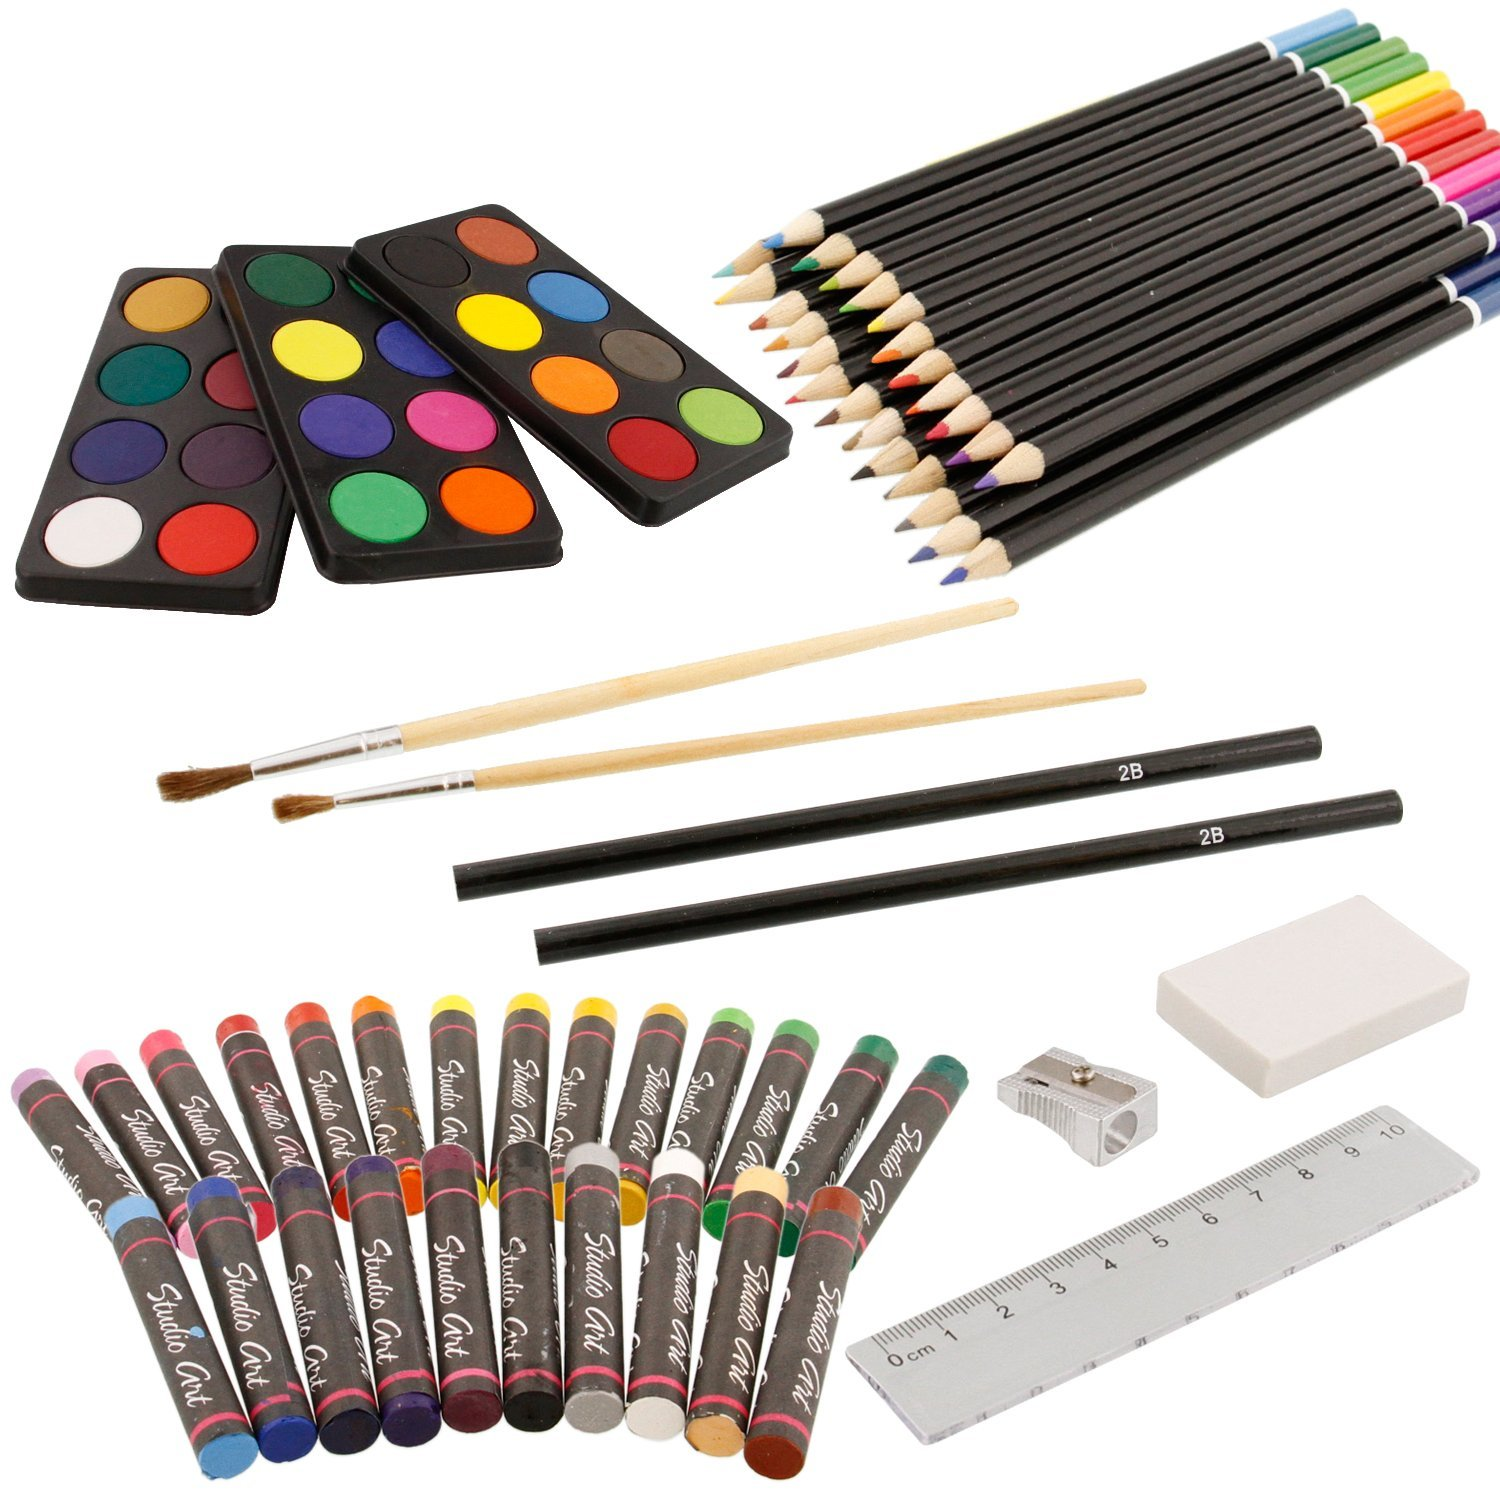 U.S Art Supply 82 Piece Deluxe Art Creativity Set in Wooden Case with 2-Pads of 9x12 90 Pound 30 Sheet Sketch Books